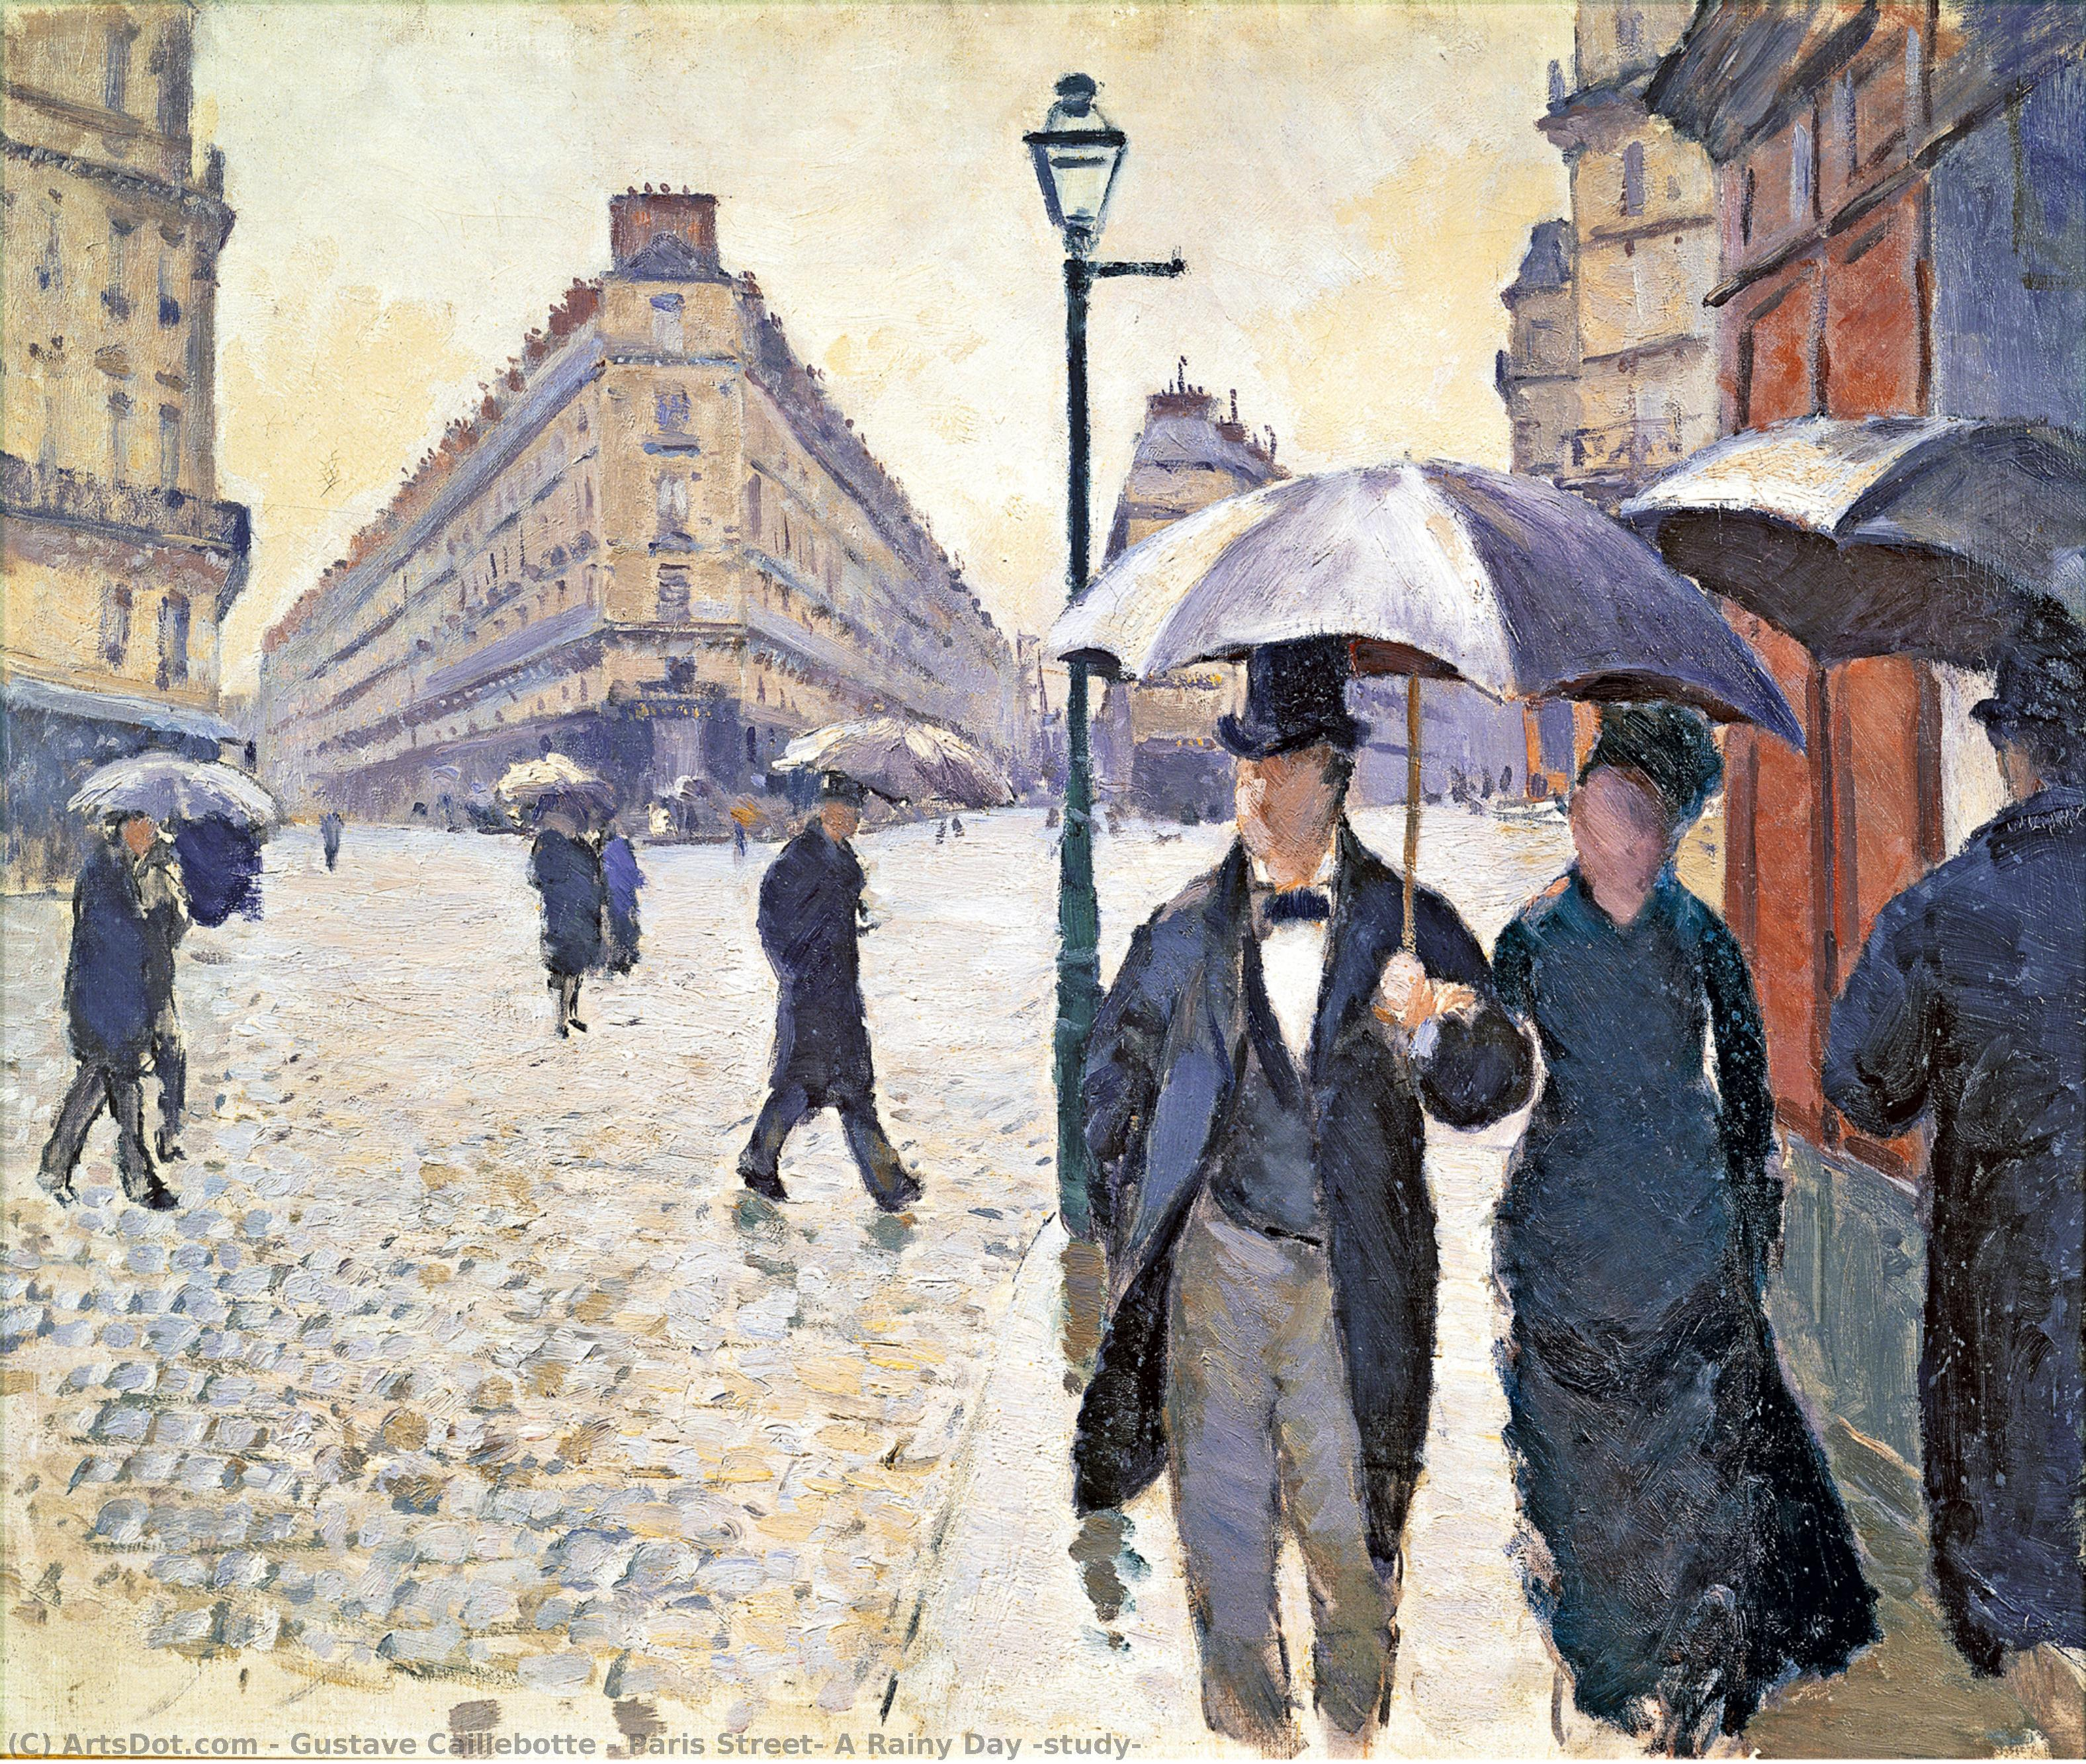 Wikioo.org - The Encyclopedia of Fine Arts - Painting, Artwork by Gustave Caillebotte - Paris Street: A Rainy Day (study)